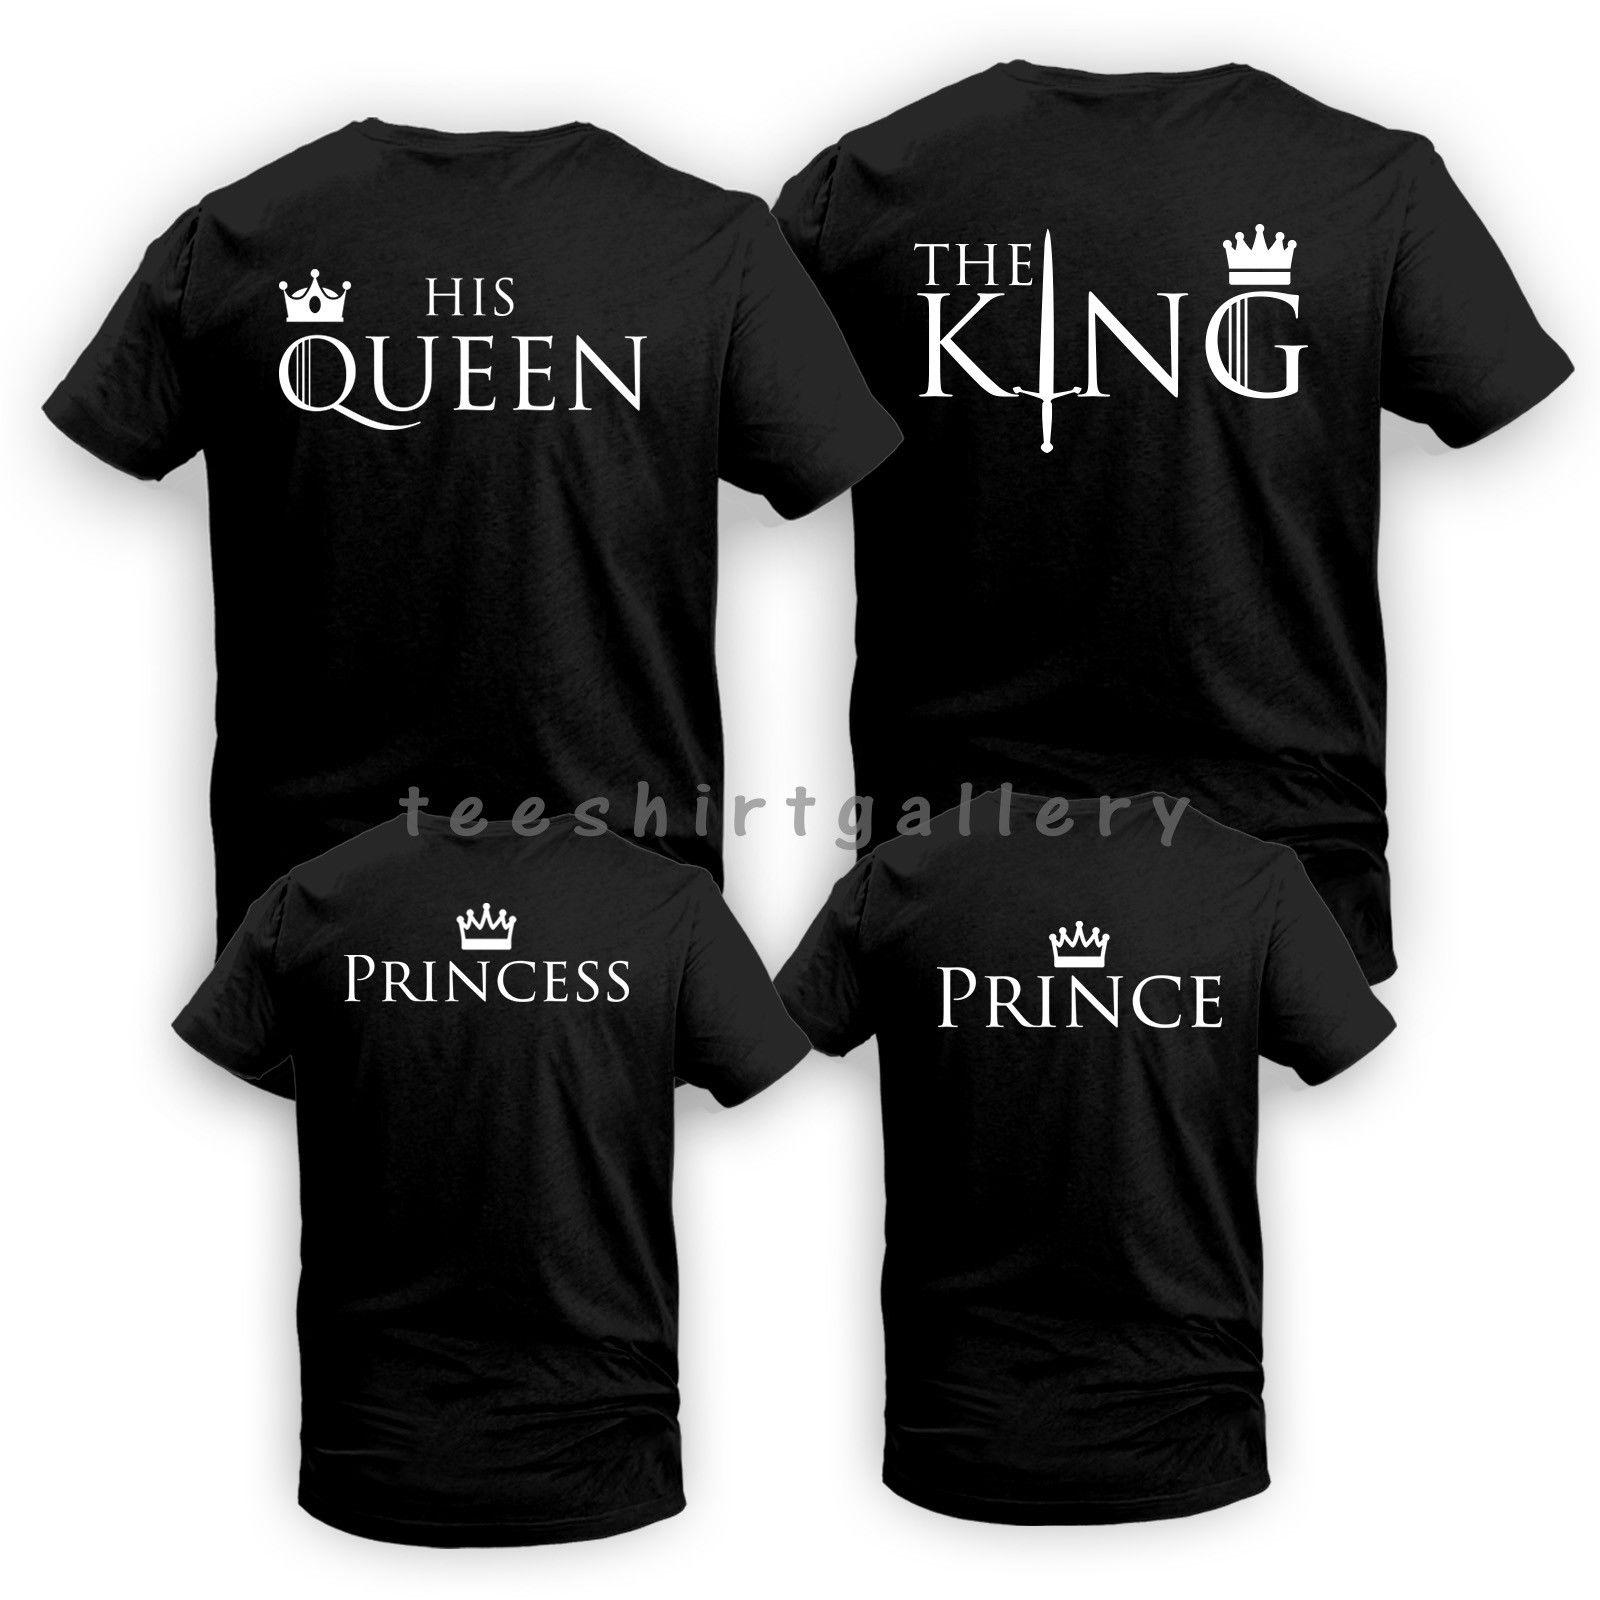 e1ae103e7bce2 King Queen His Queen Her King Couple Matching Funny LOVE Valentine s Day T  Shirt Funny Unisex Casual Tshirt Gift Humorous Tee Shirts Design And Order T  ...